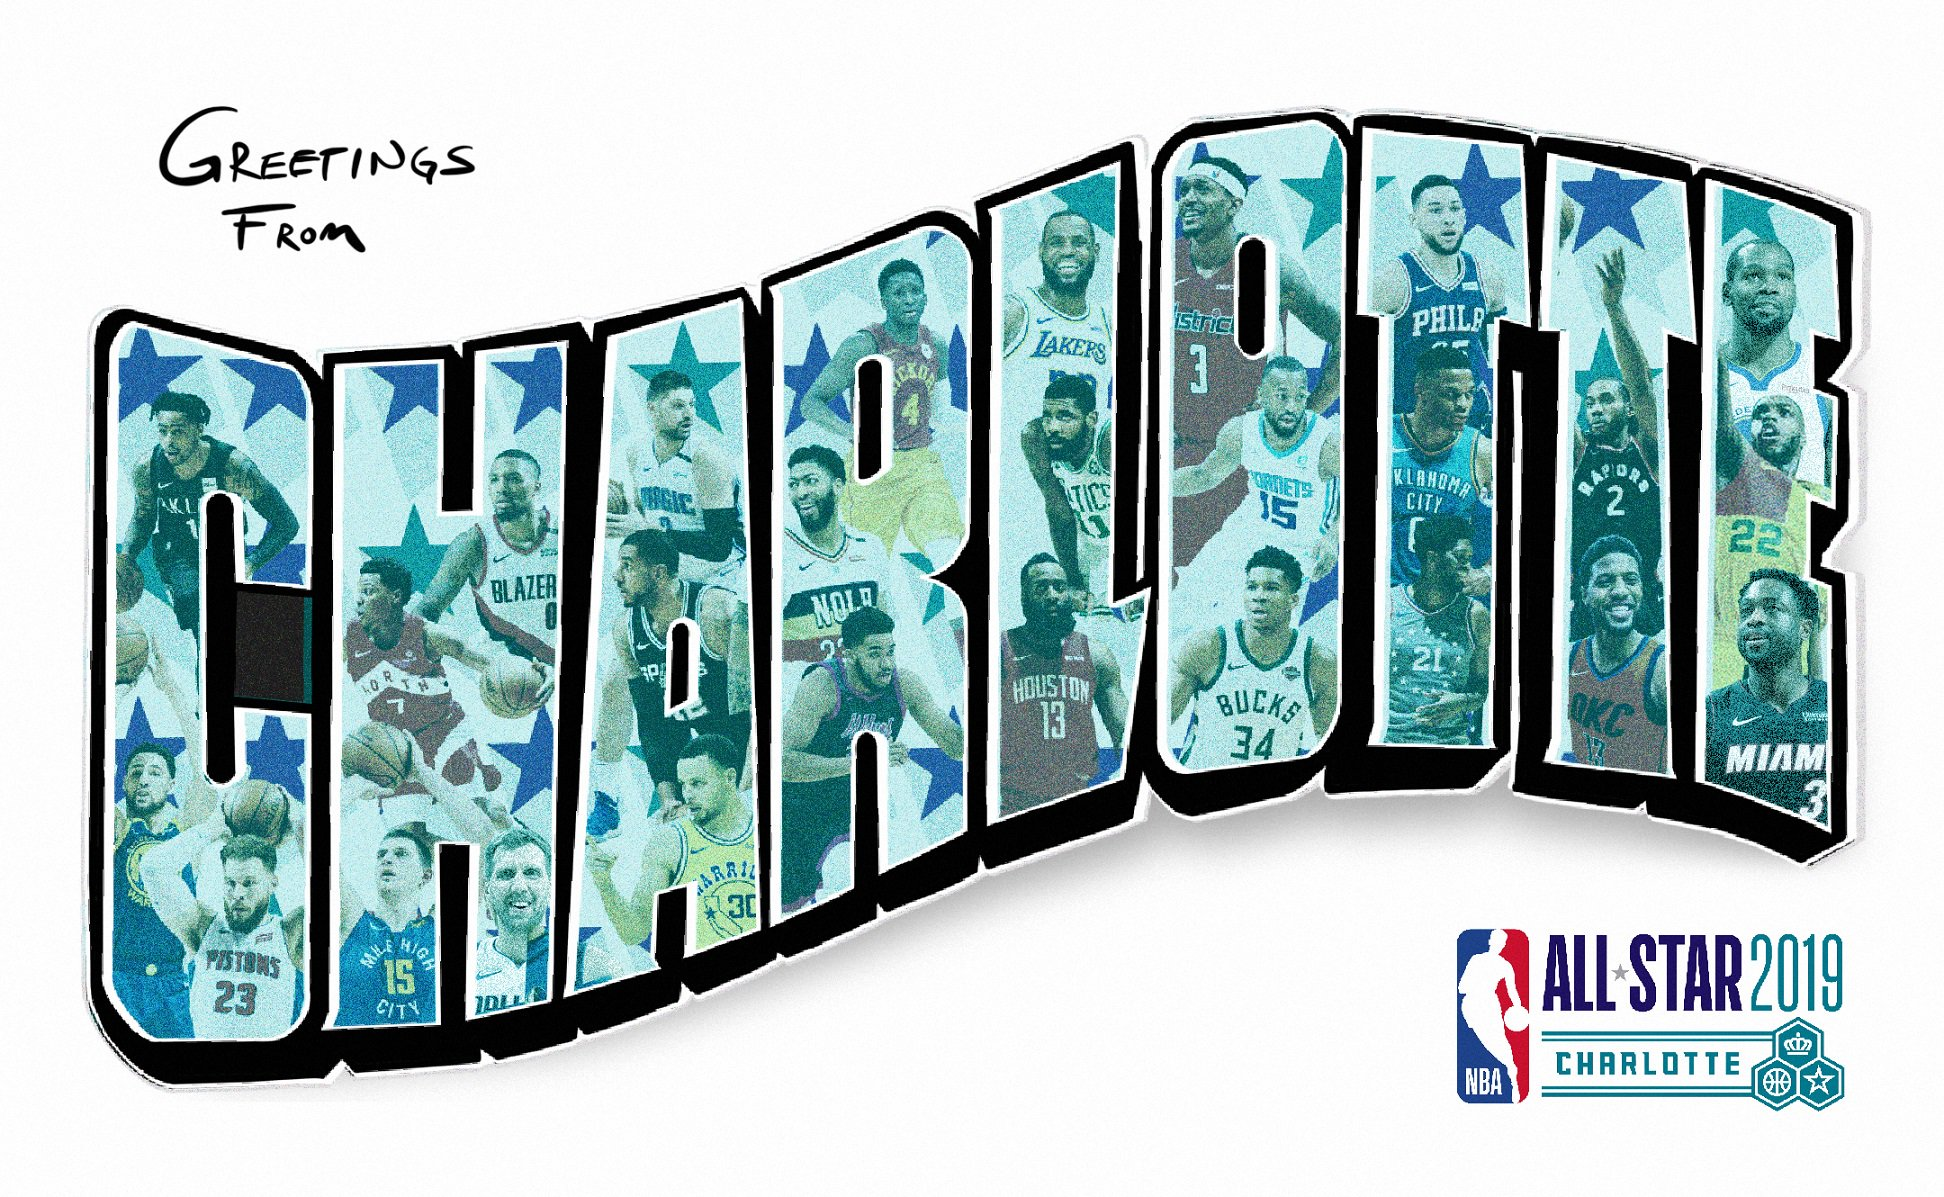 2019 NBA All-Star Review